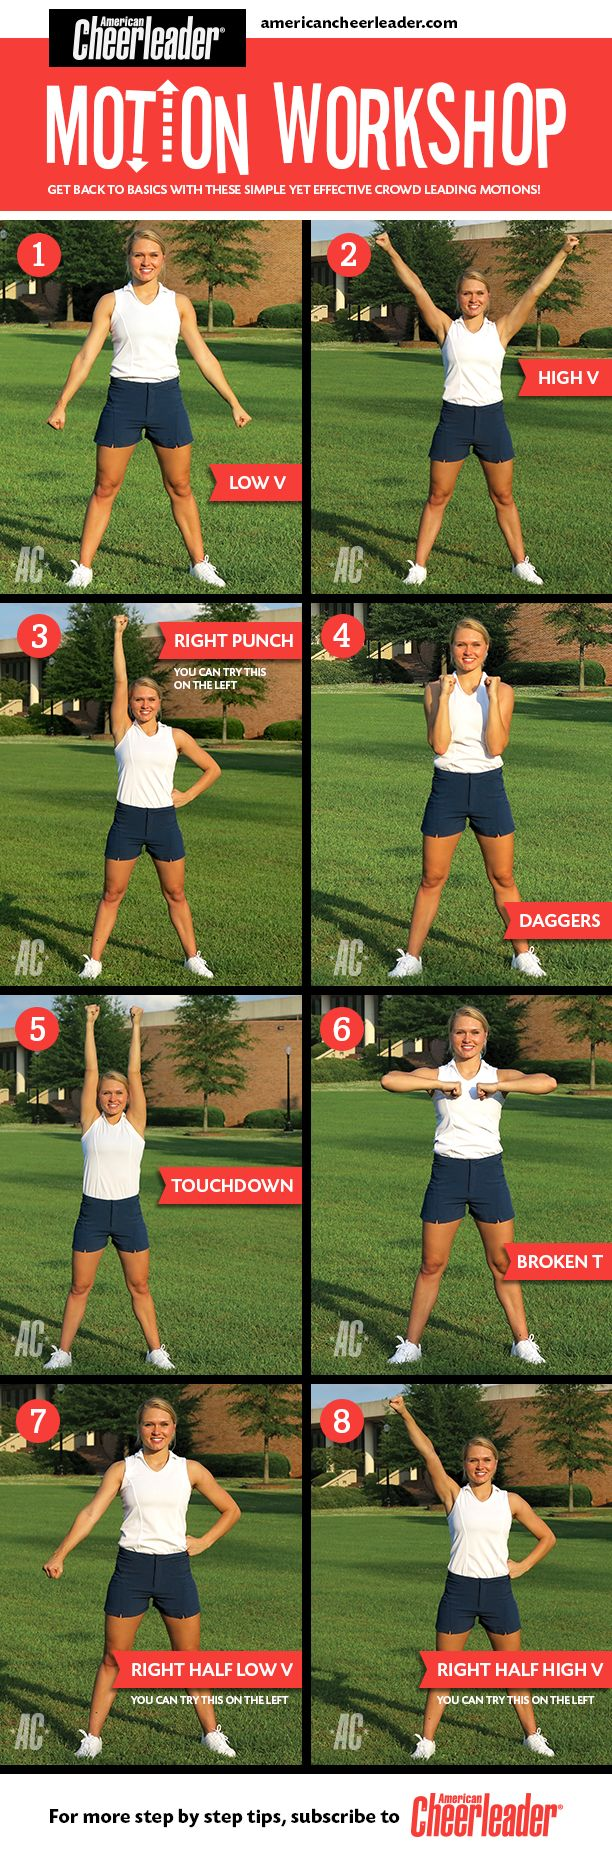 One of the best ways to lead the crowd is with super sharp motions. Make sure yours are on point this season.